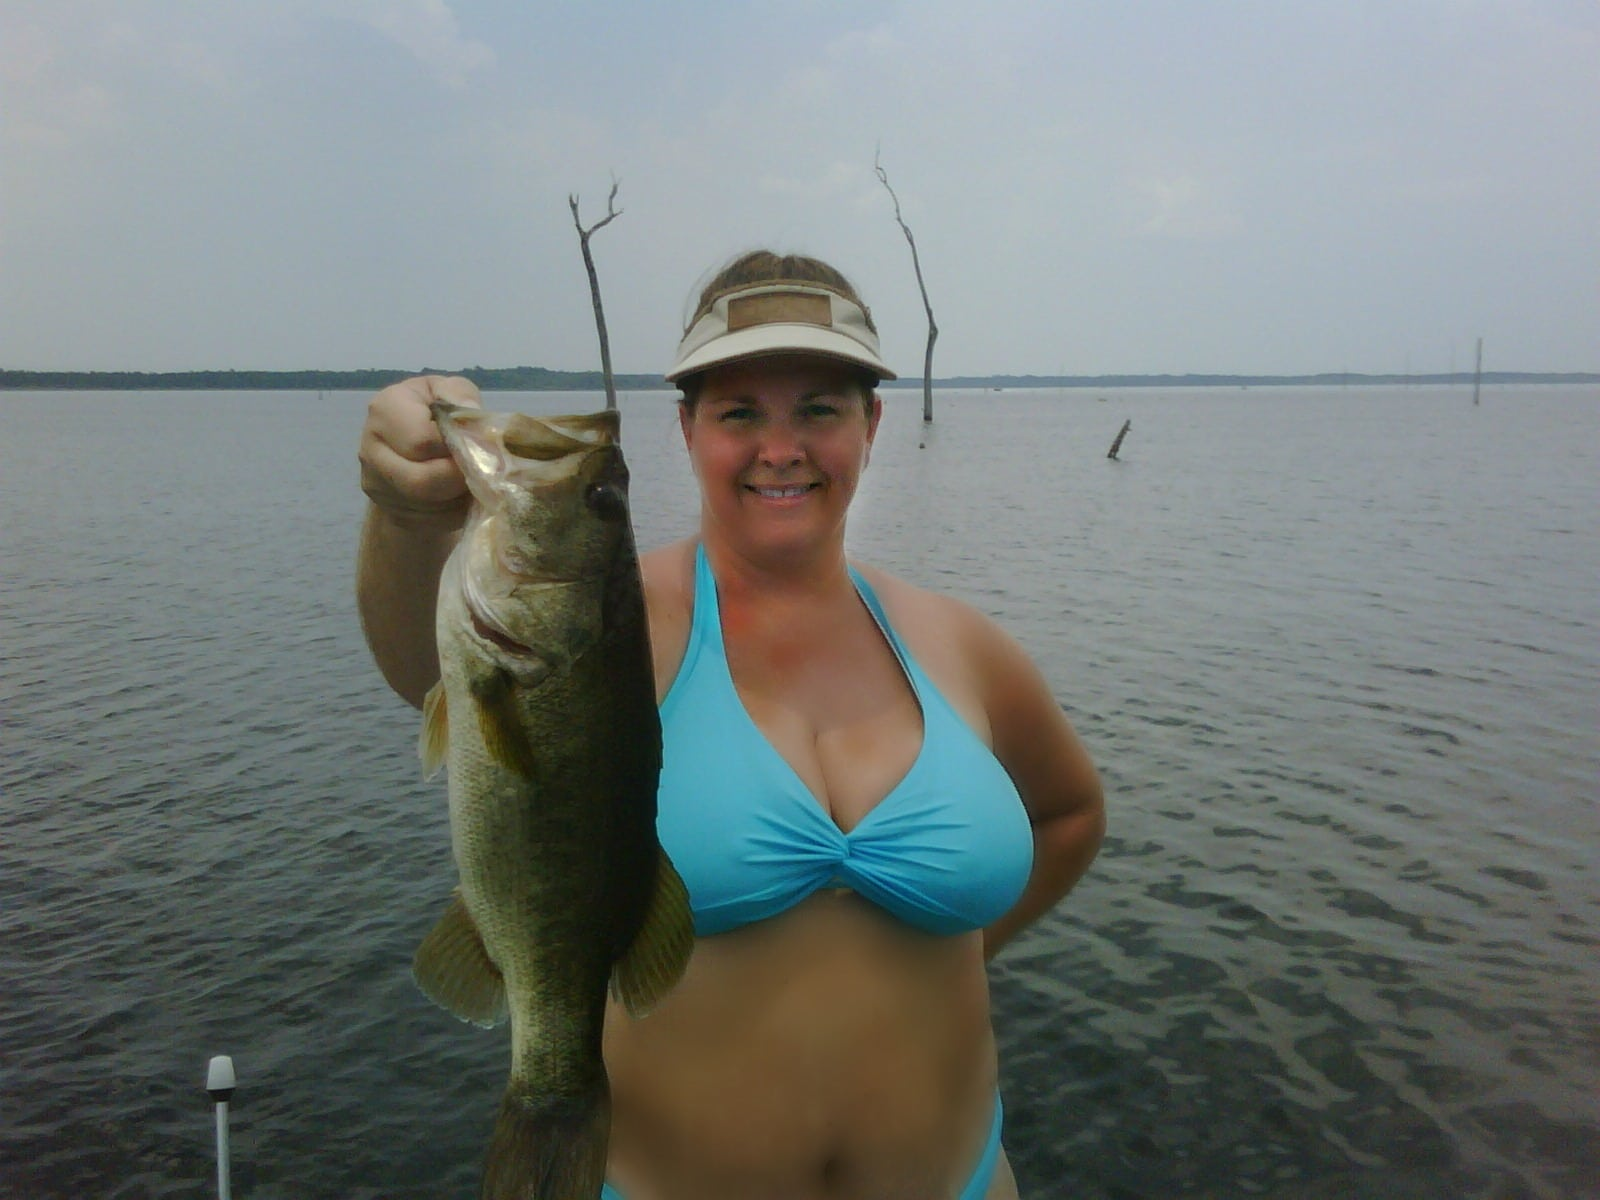 Chubby girl Bass fishing in a bikini